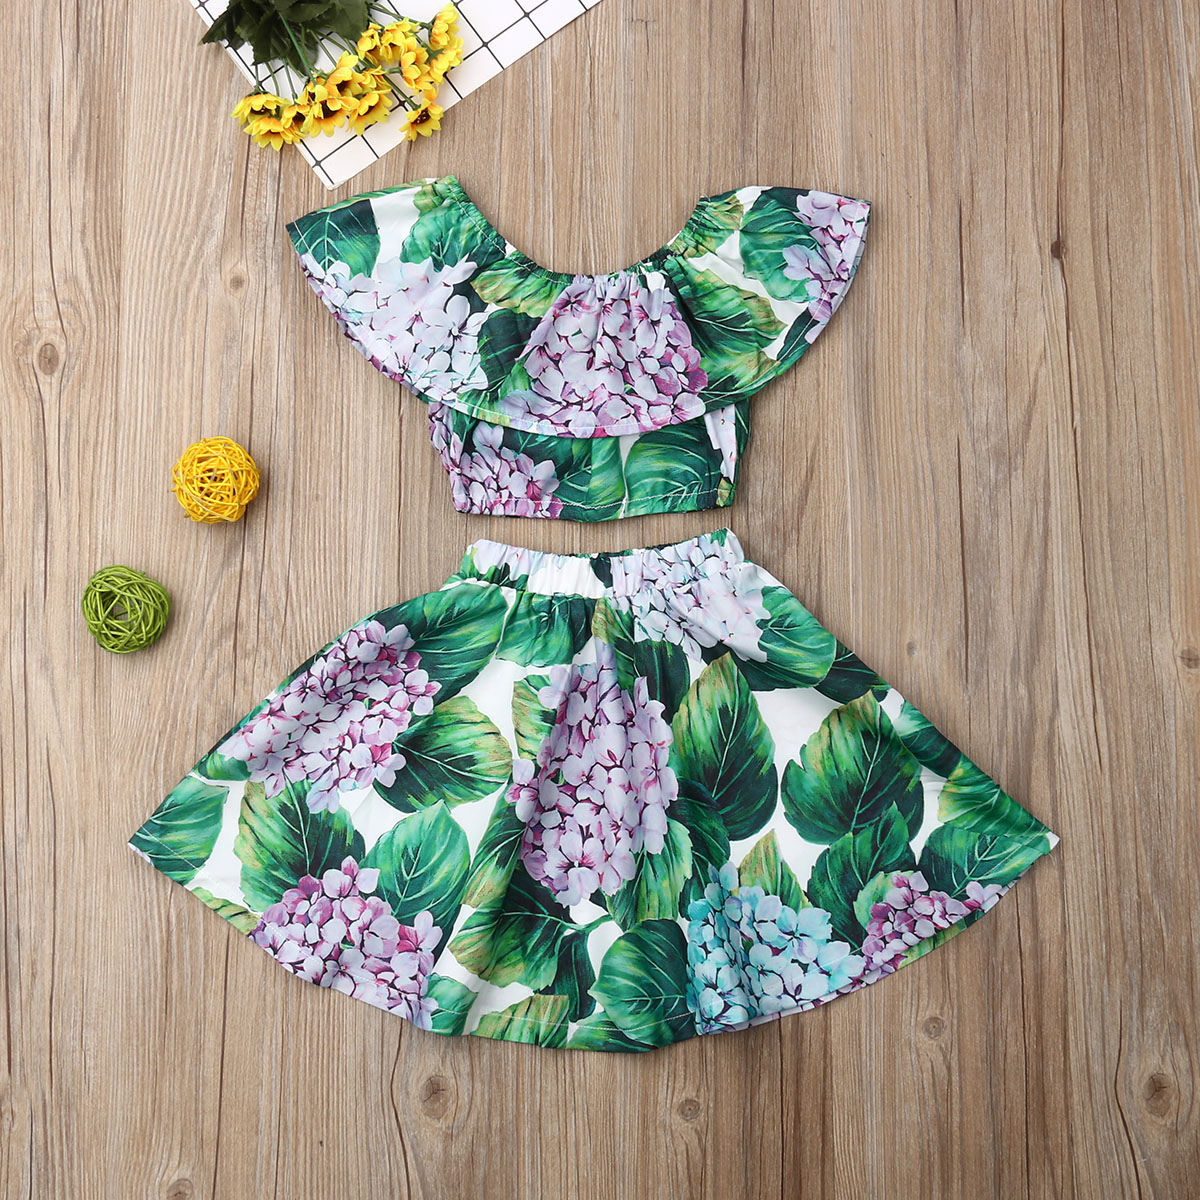 Pudcoco Summer Toddler Baby Girl Clothes Off Shoulder Flower Print Ruffle Tops Skirt Sunsuit 2Pcs Outfits Summer Clothes